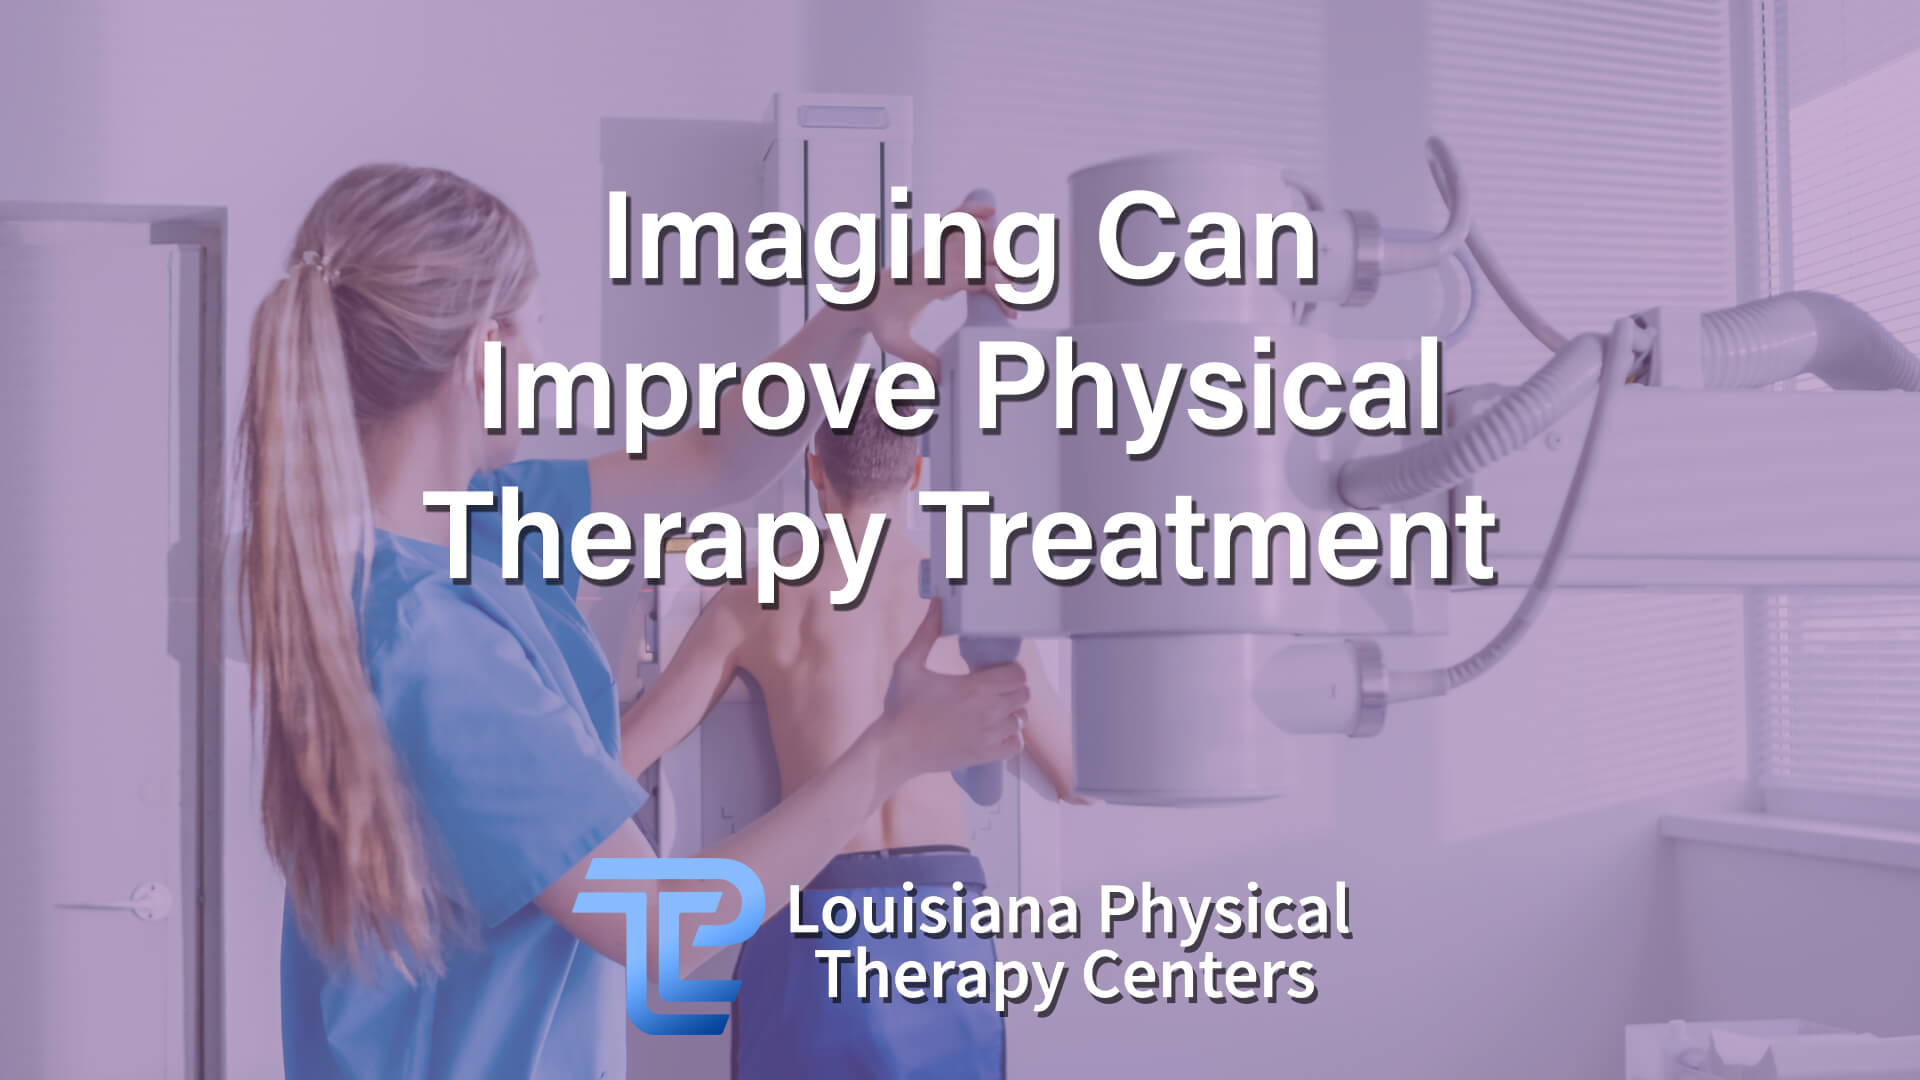 Imaging Can Improve Physical Therapy Treatment